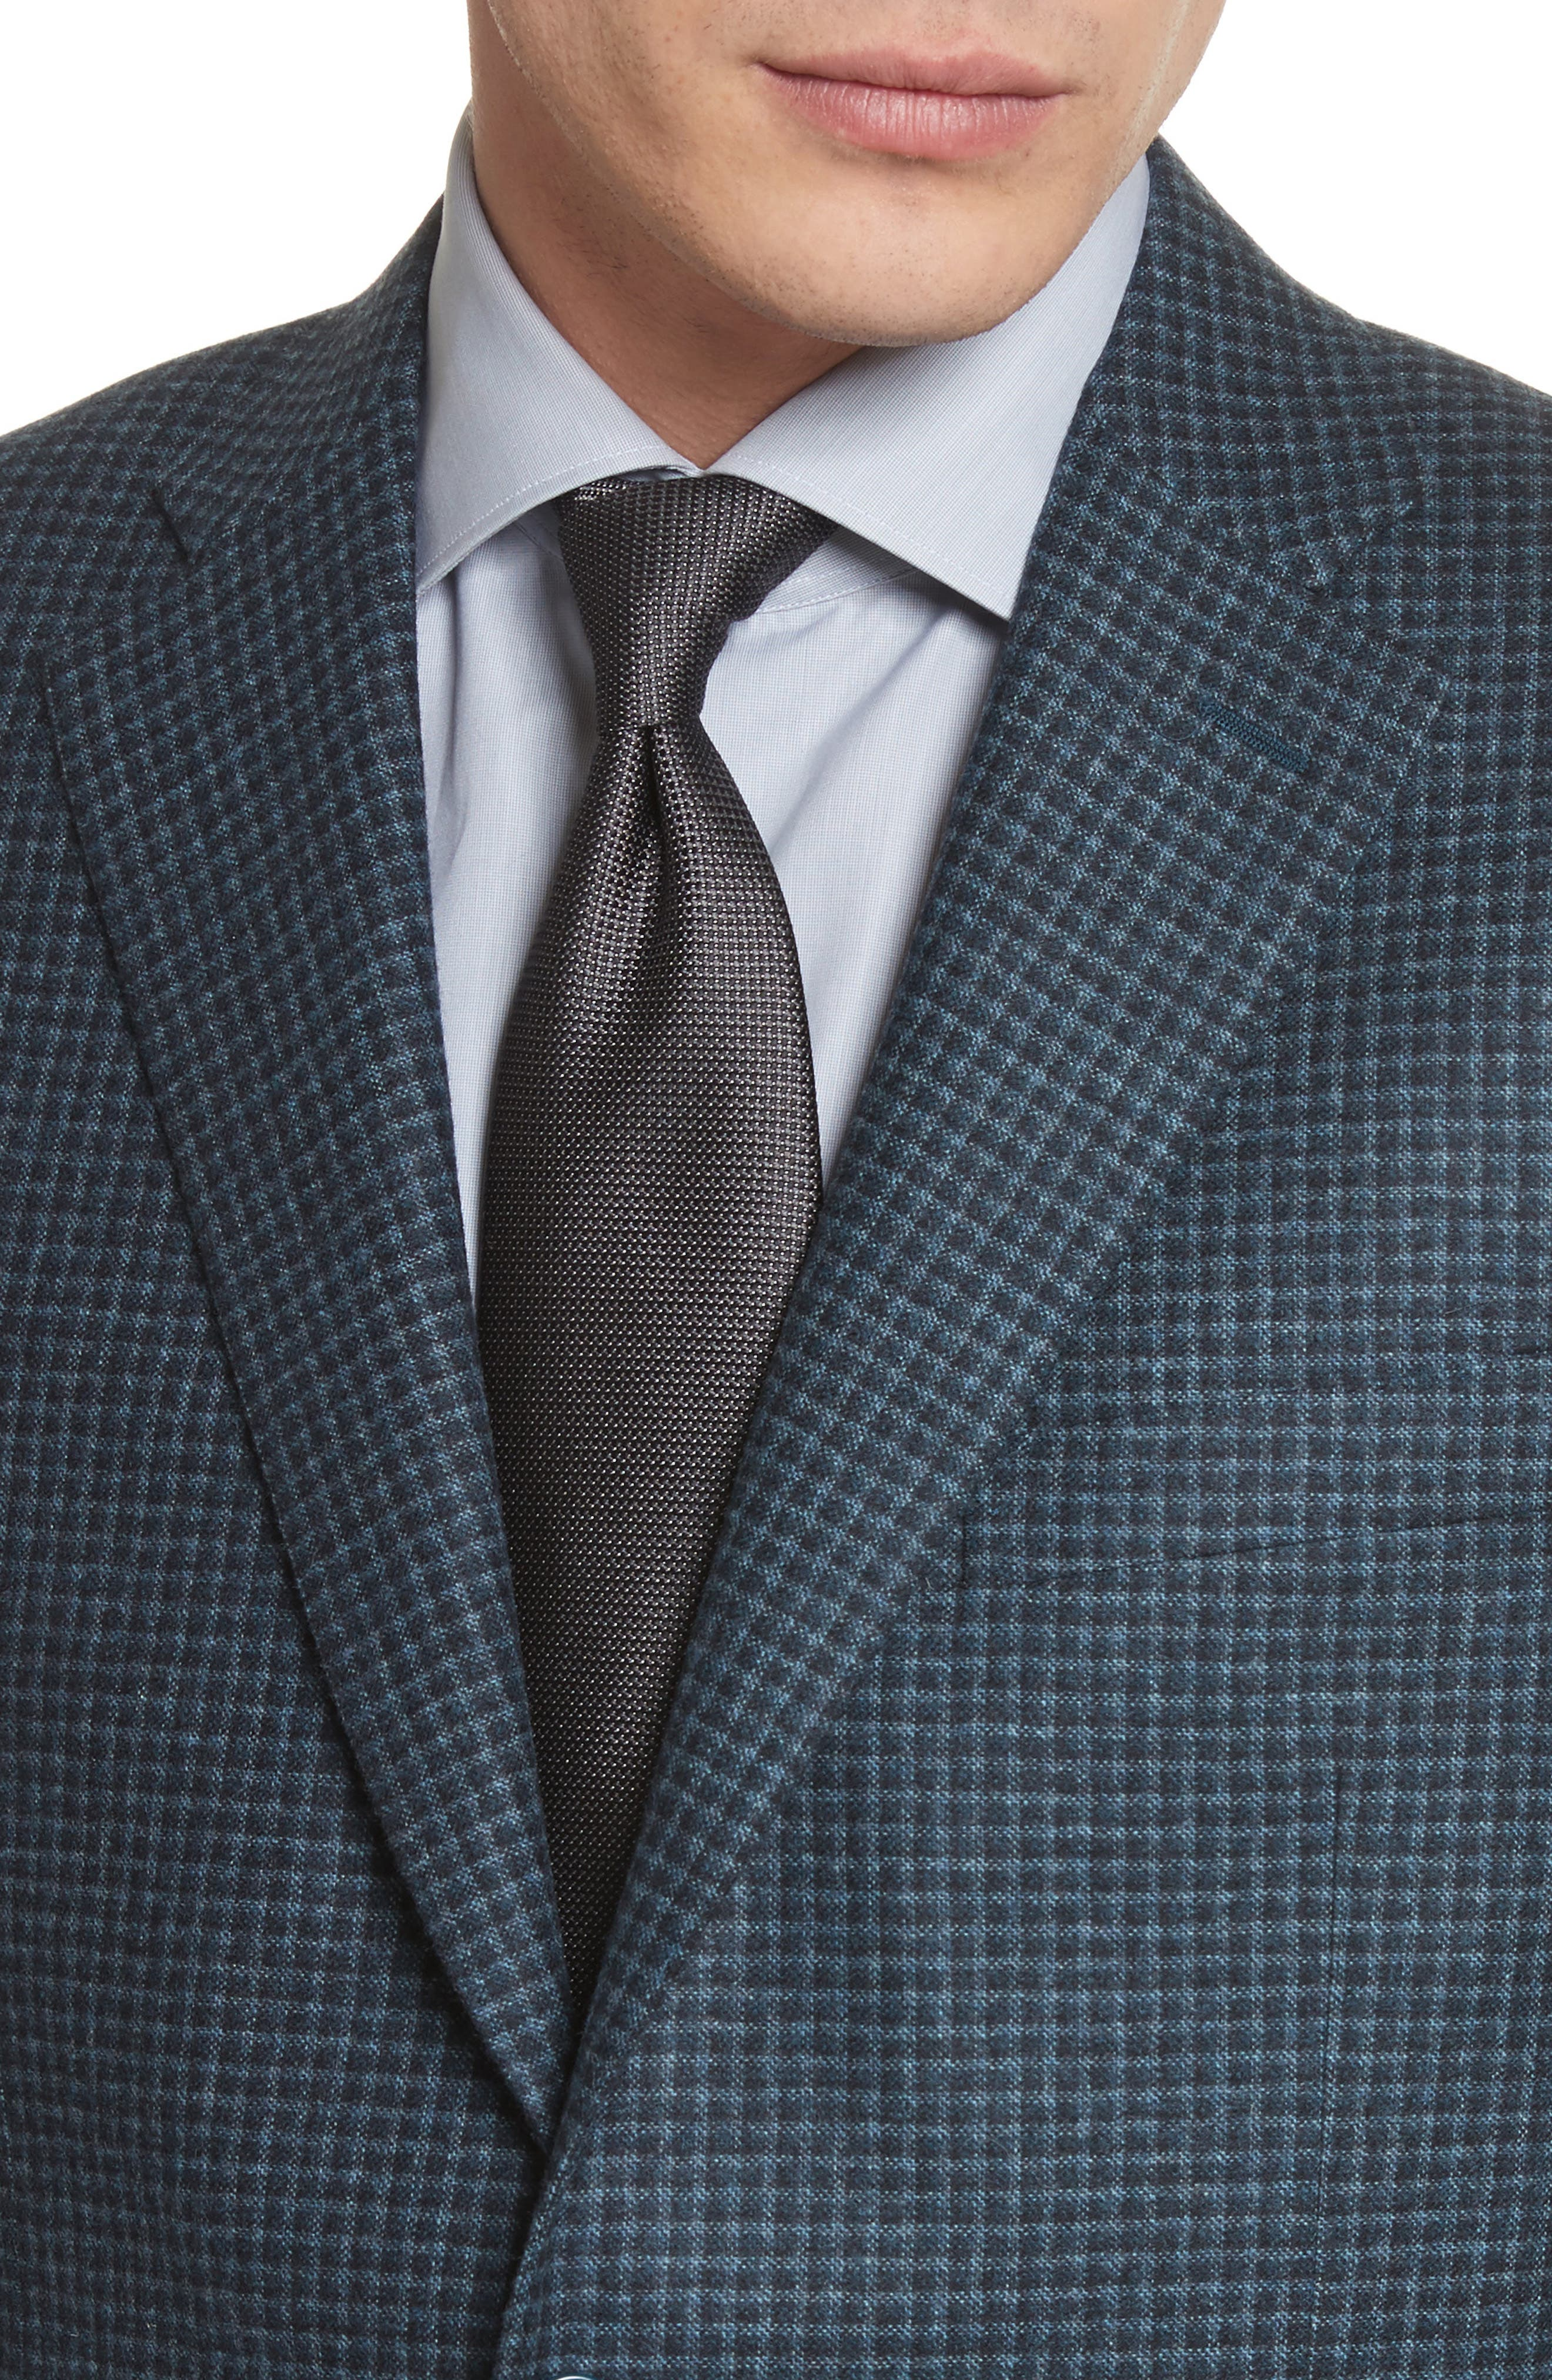 Classic Fit Check Wool & Cashmere Sport Coat,                             Alternate thumbnail 4, color,                             430